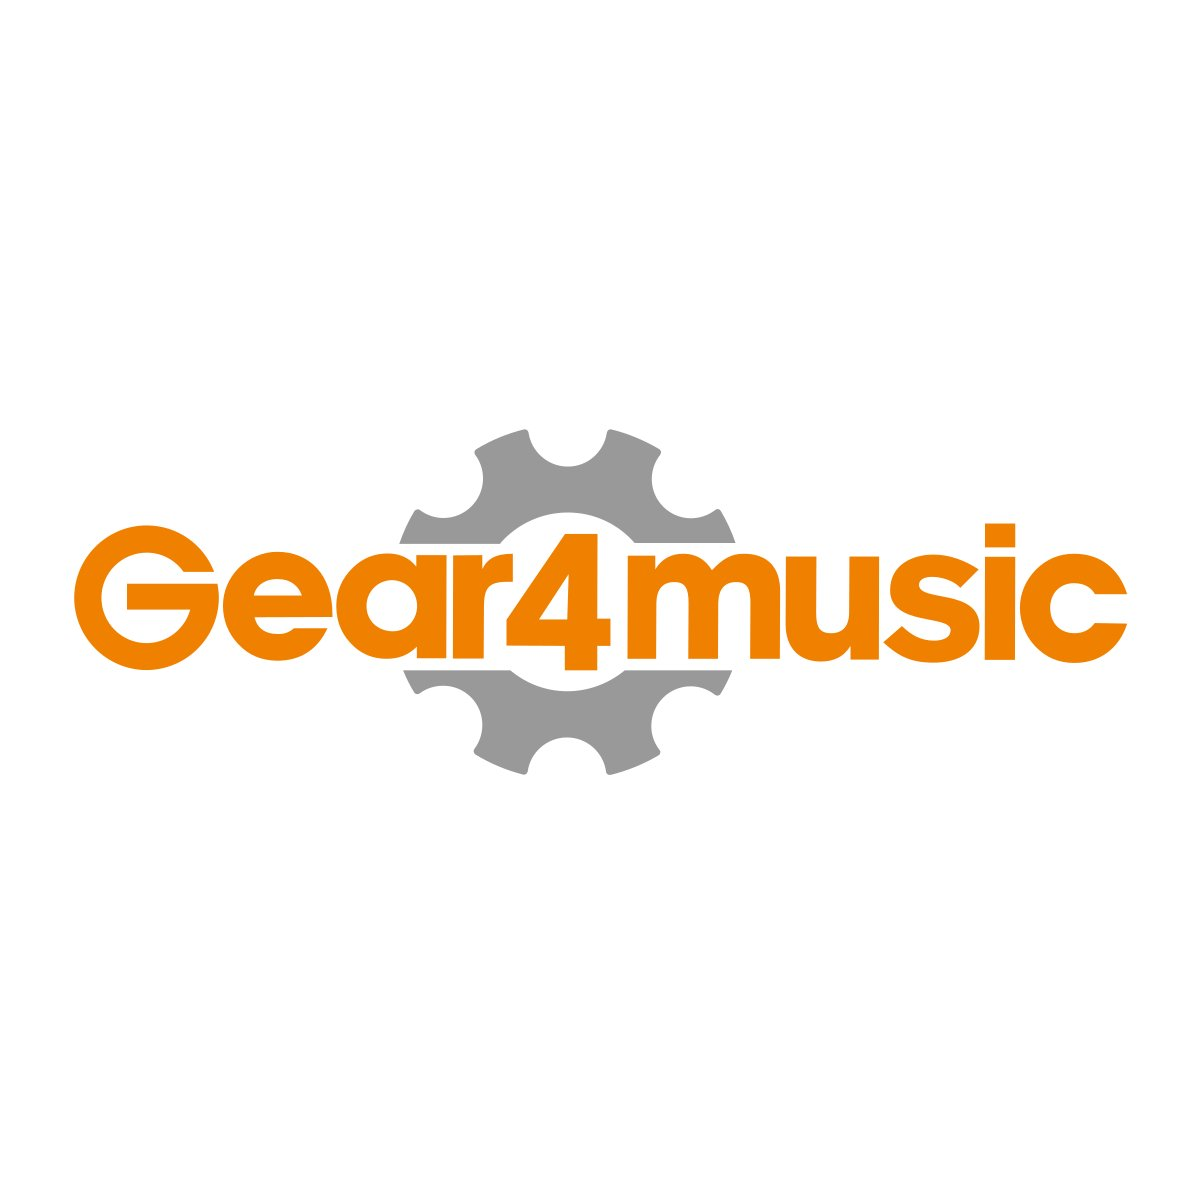 Dzwonki, Gear4music